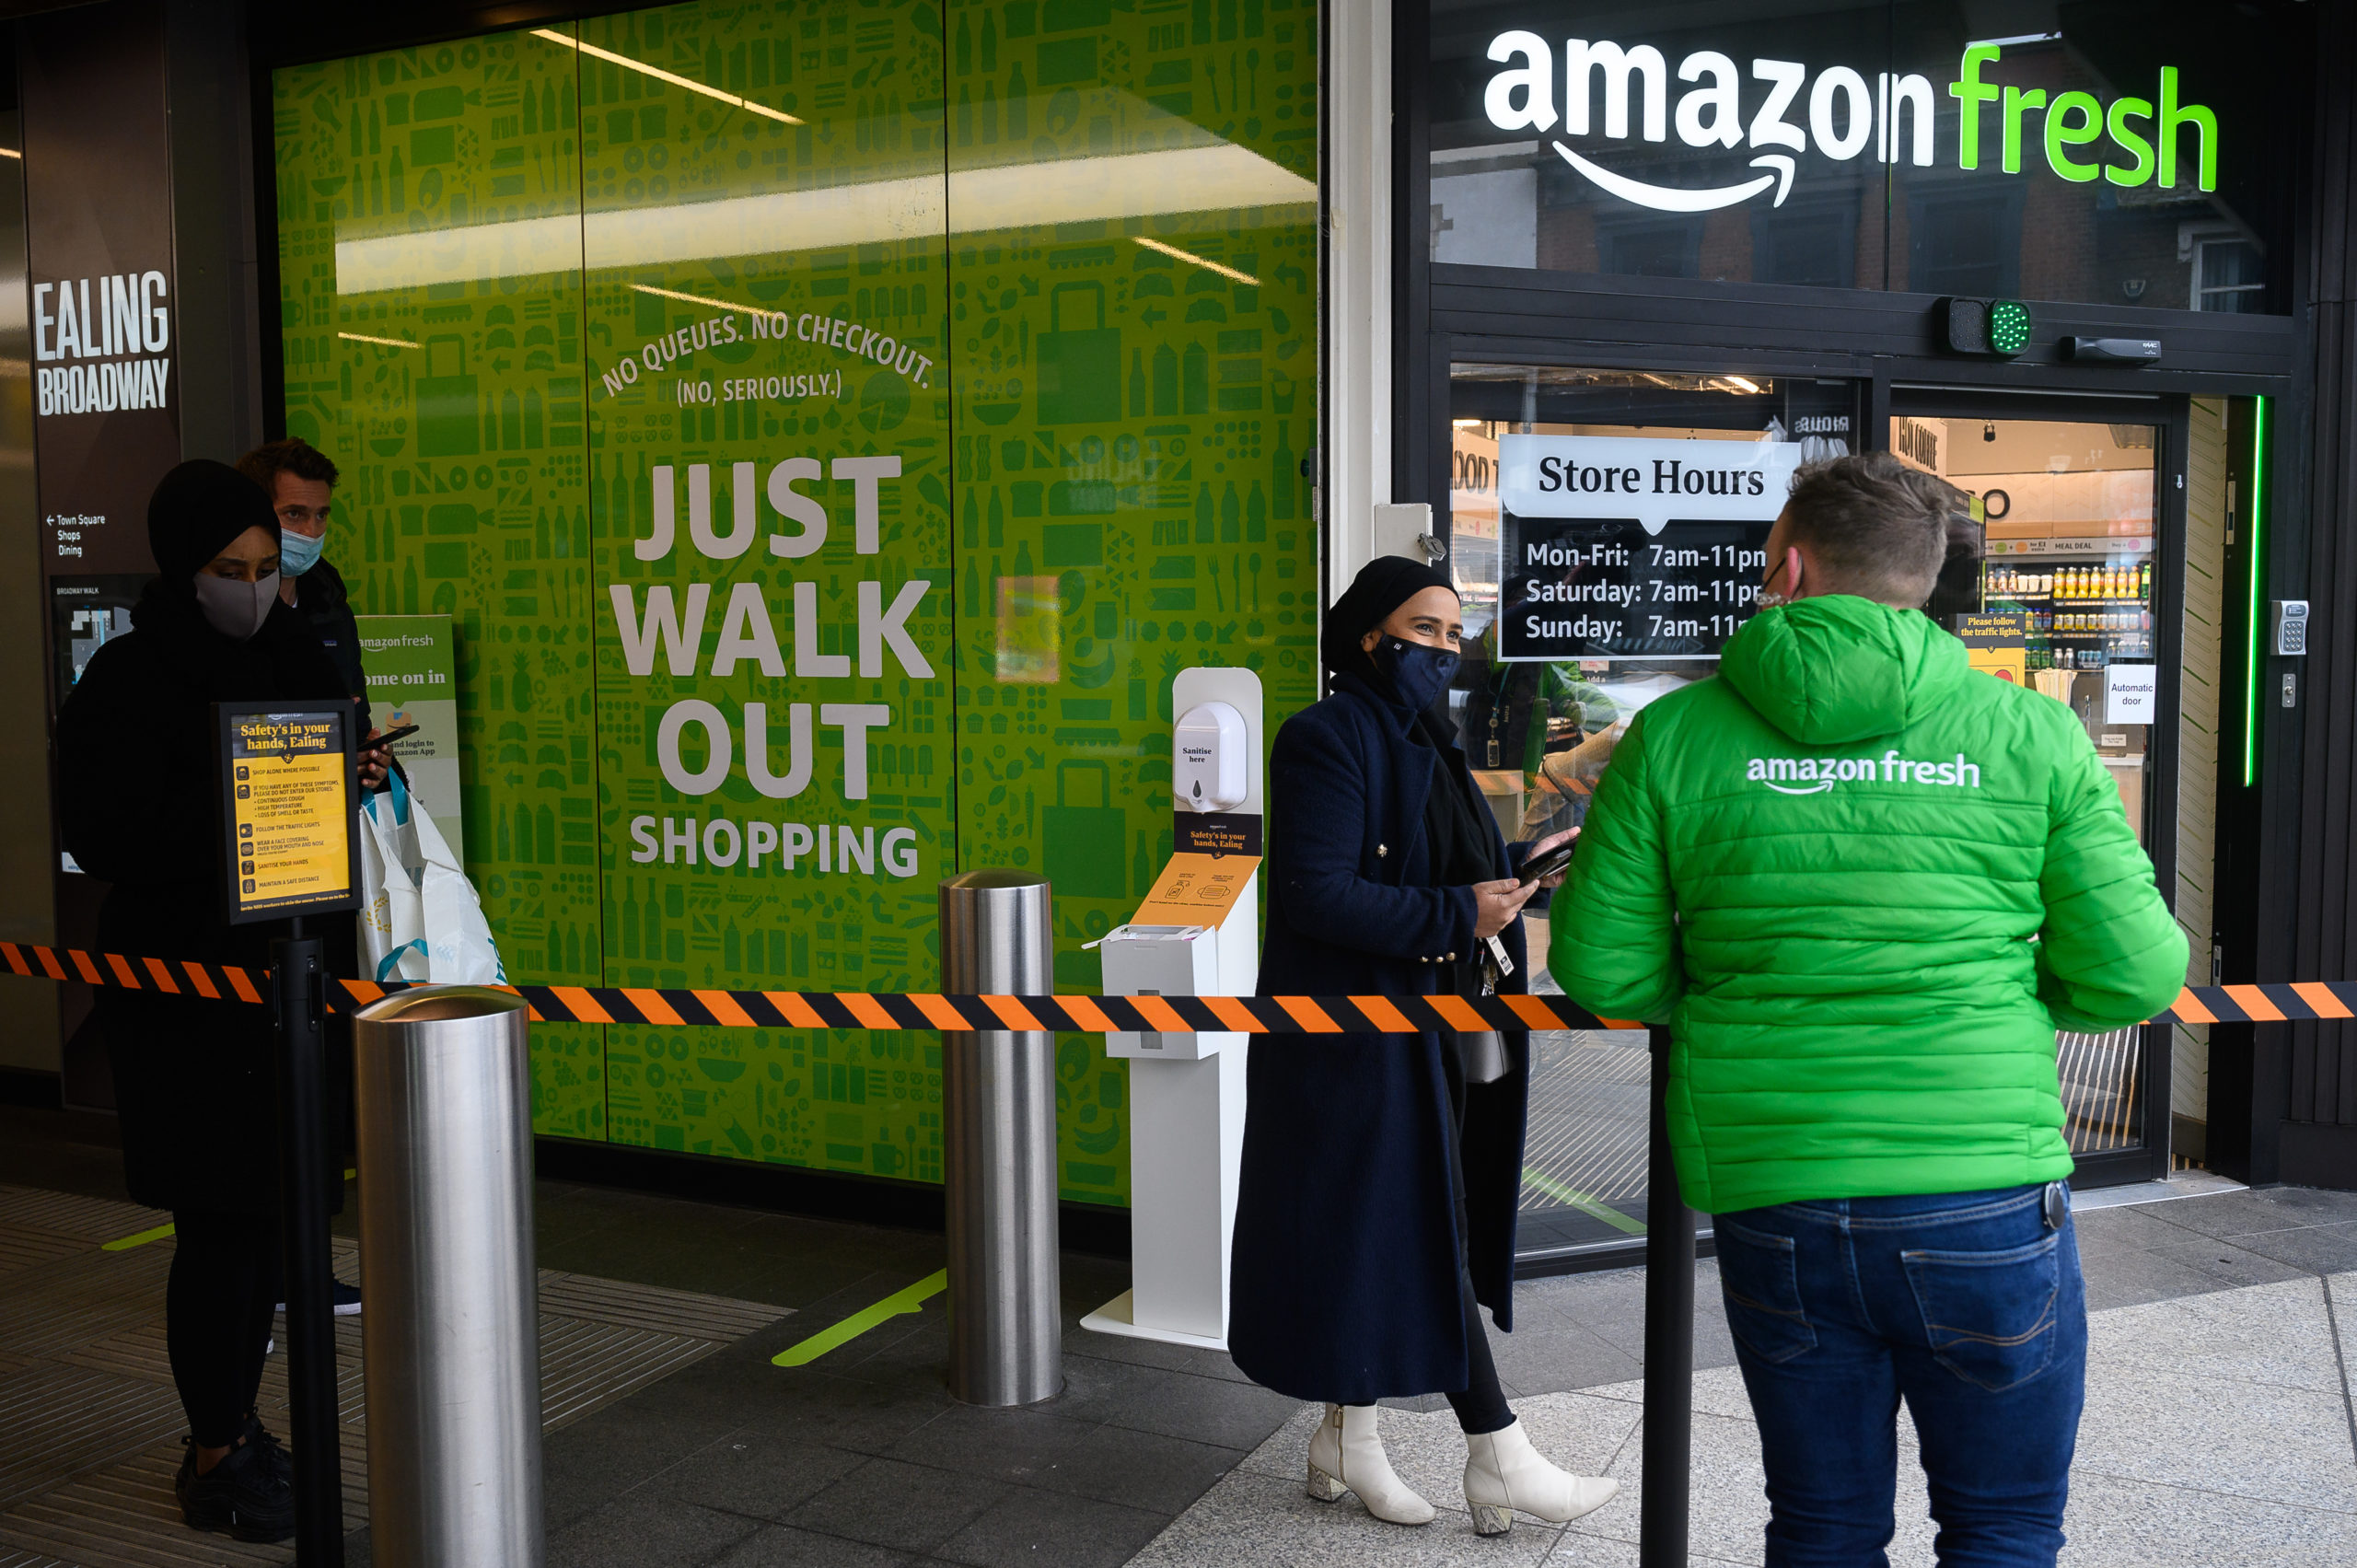 Members of staff assist customers as they wait to enter the UK's first branch of Amazon Fresh, on March 04, 2021, in the Ealing area of London, England. (Photo by Leon Neal/Getty Images)